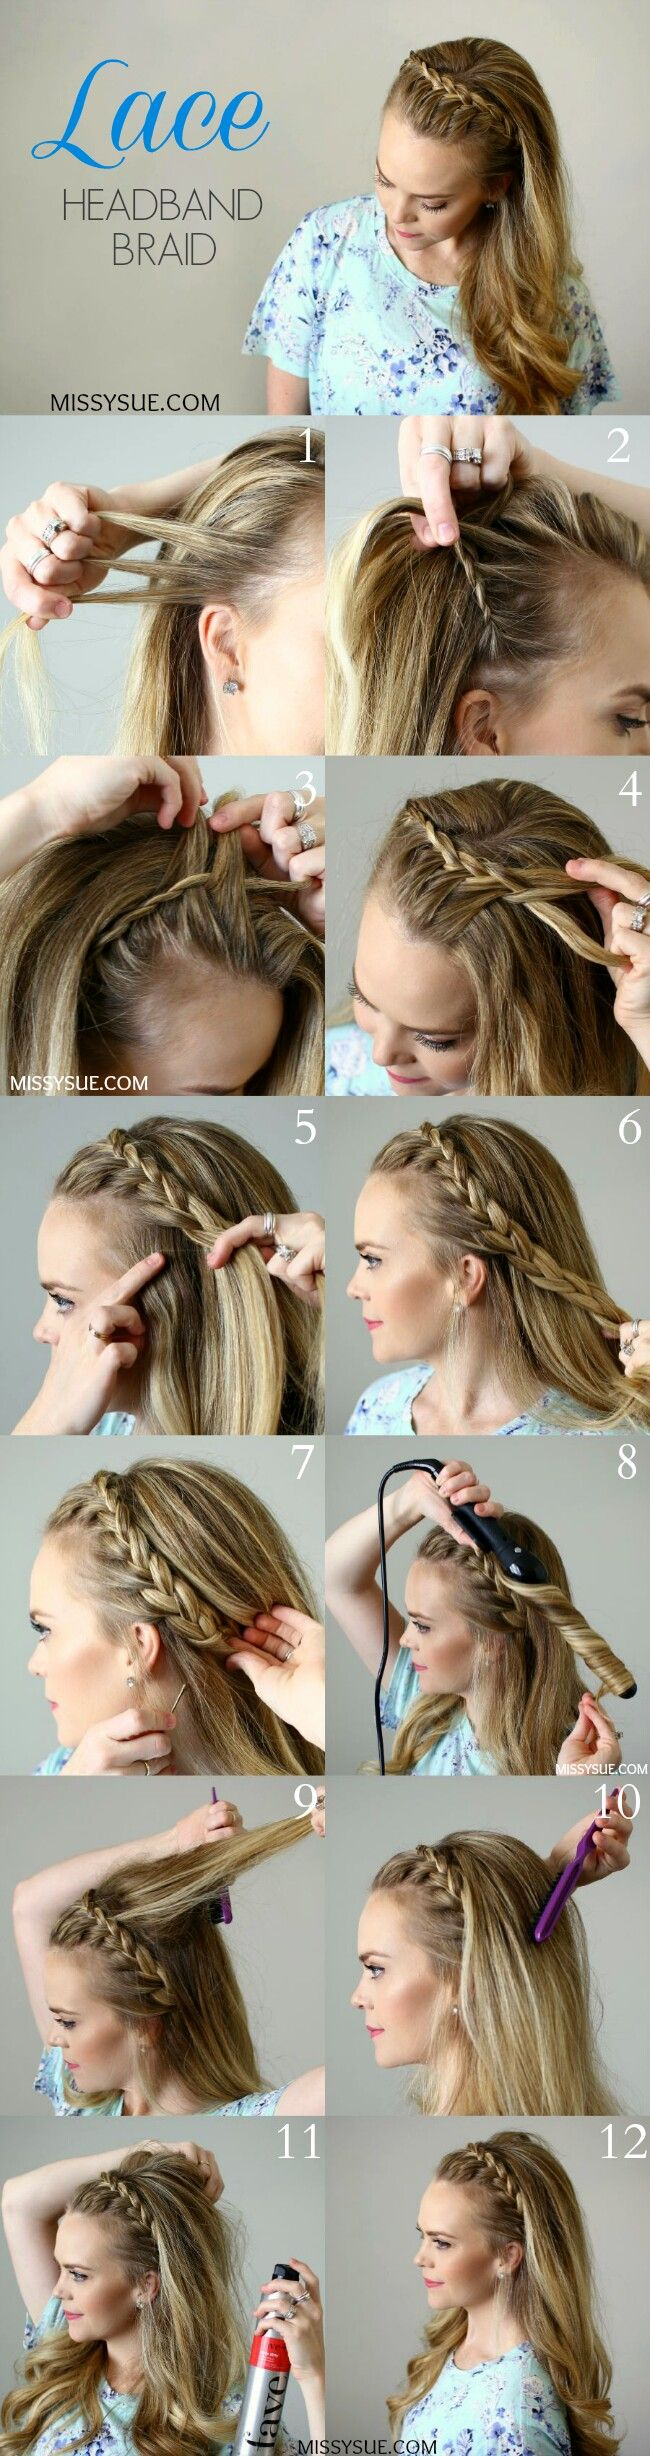 Lace head band braid by messy sue  Products I Love  Pinterest